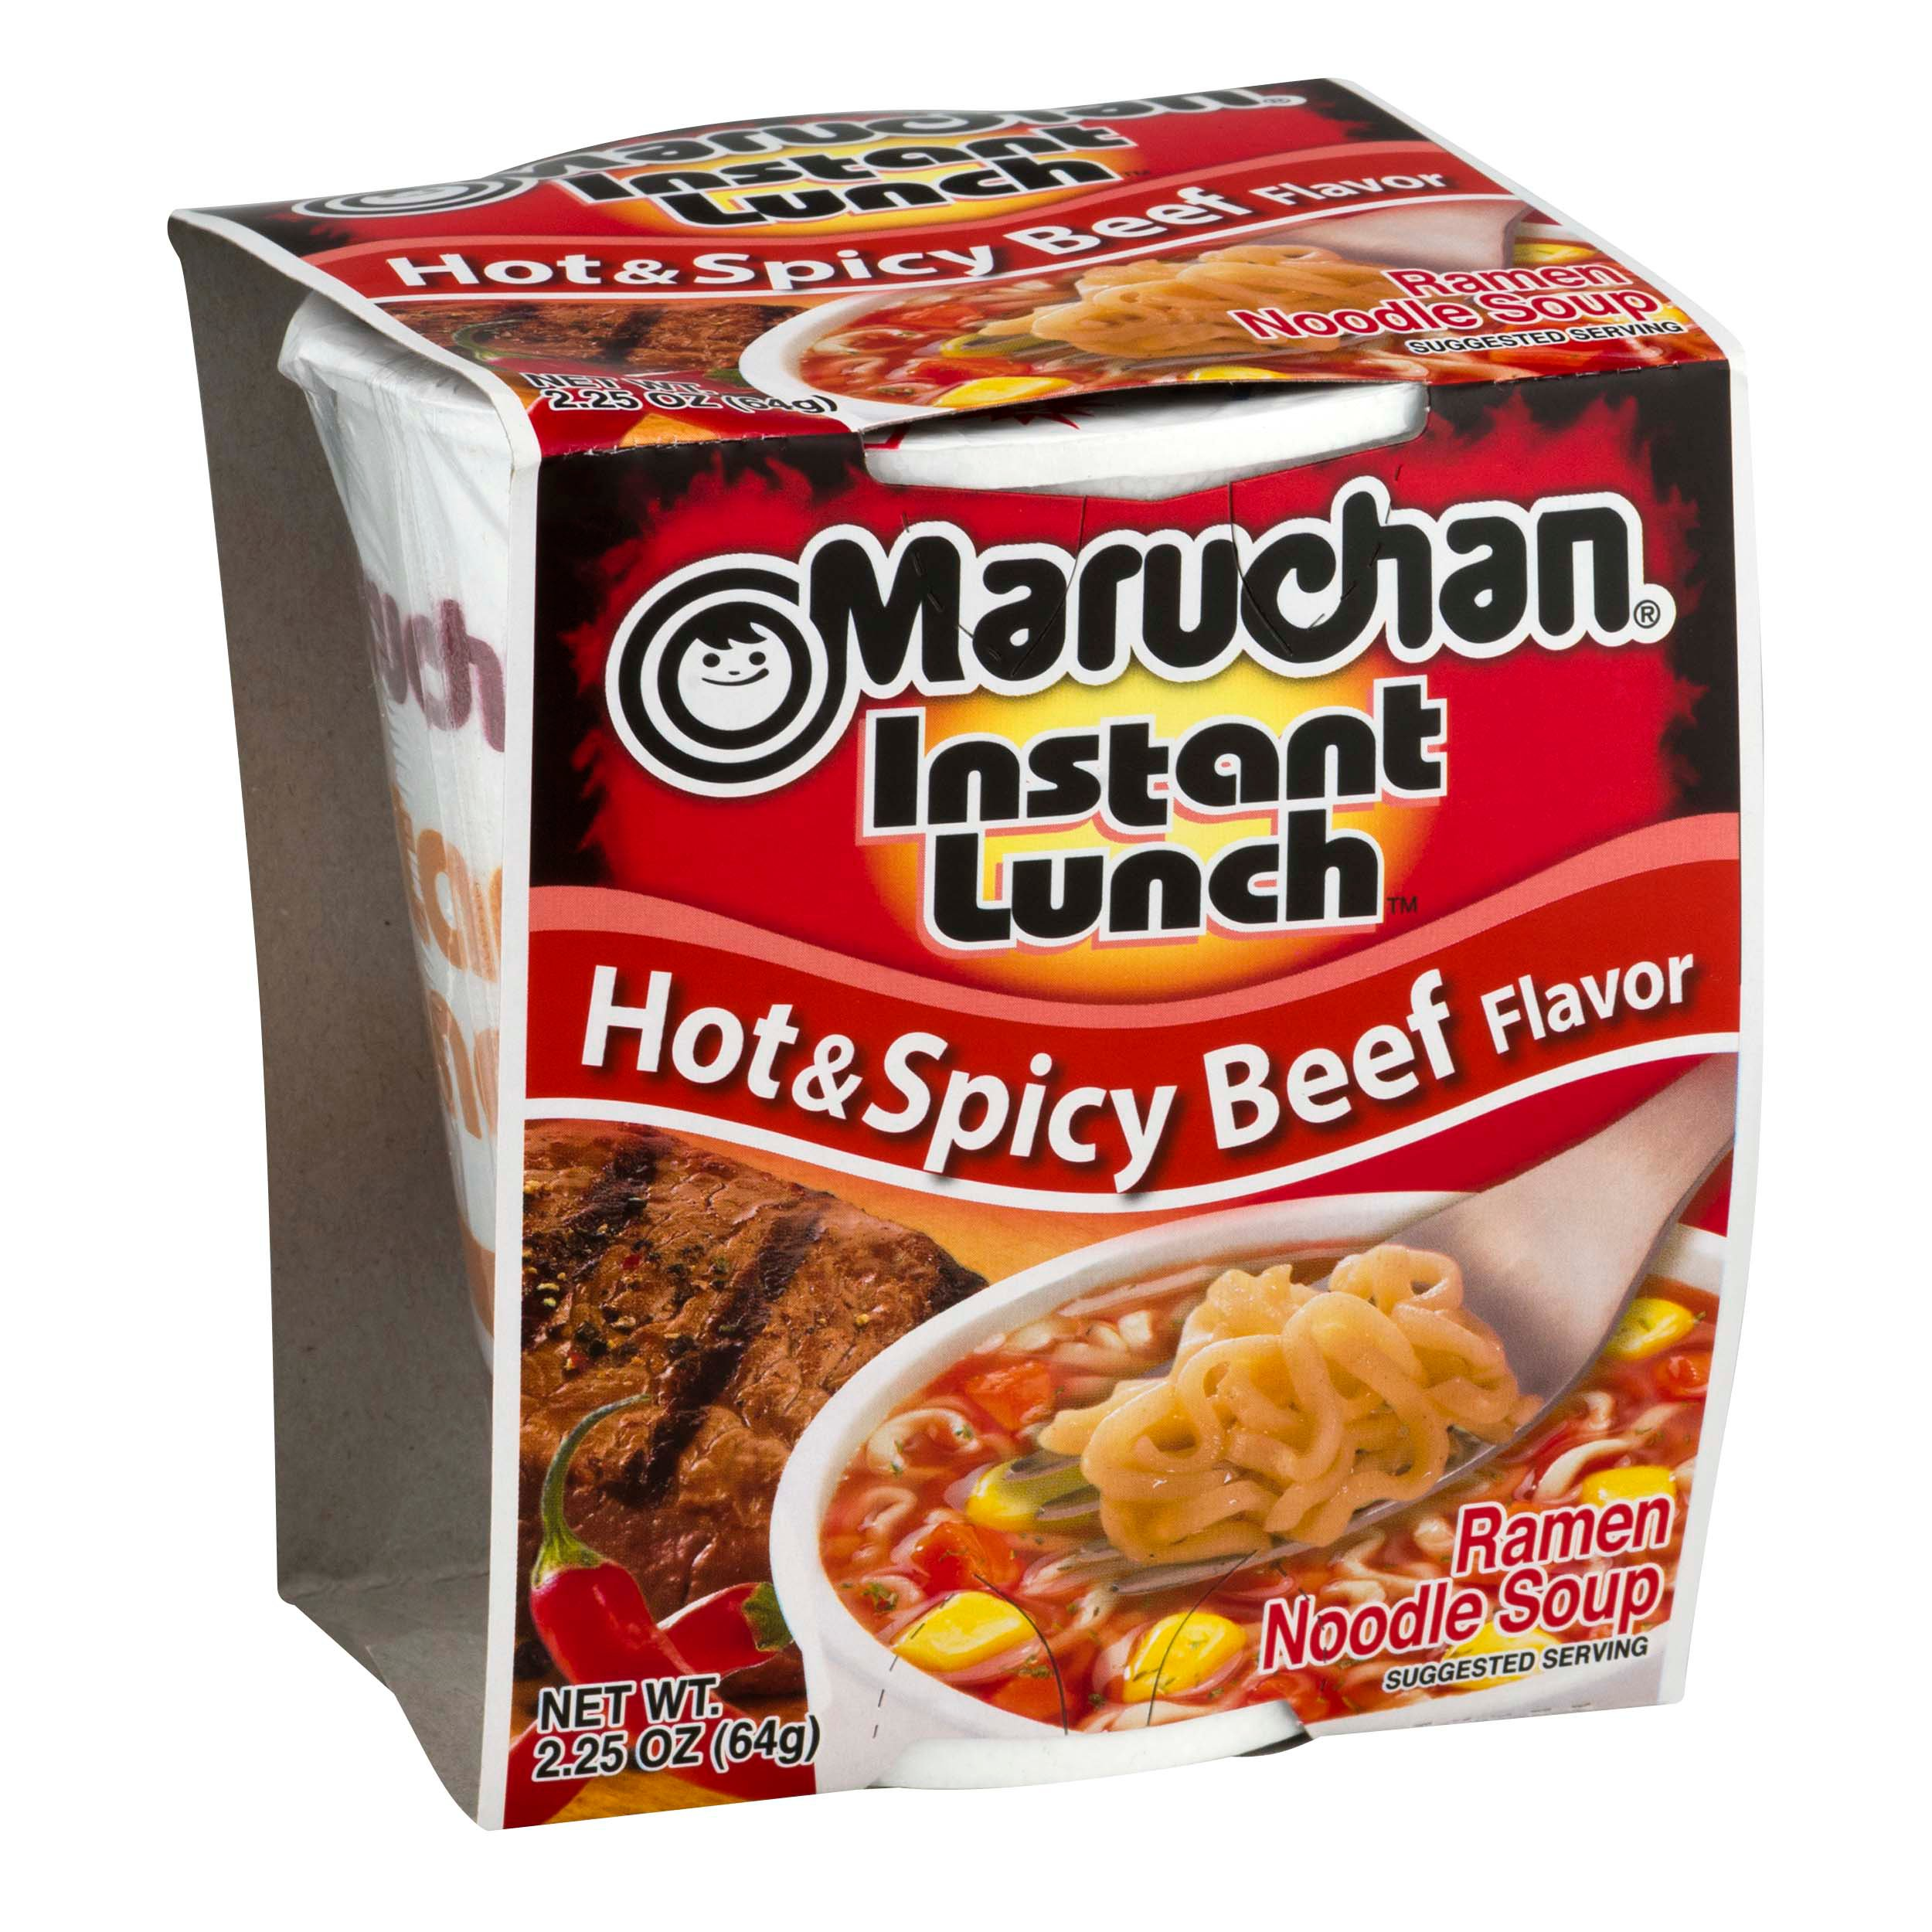 Maruchan Instant Lunch Hot and Spicy